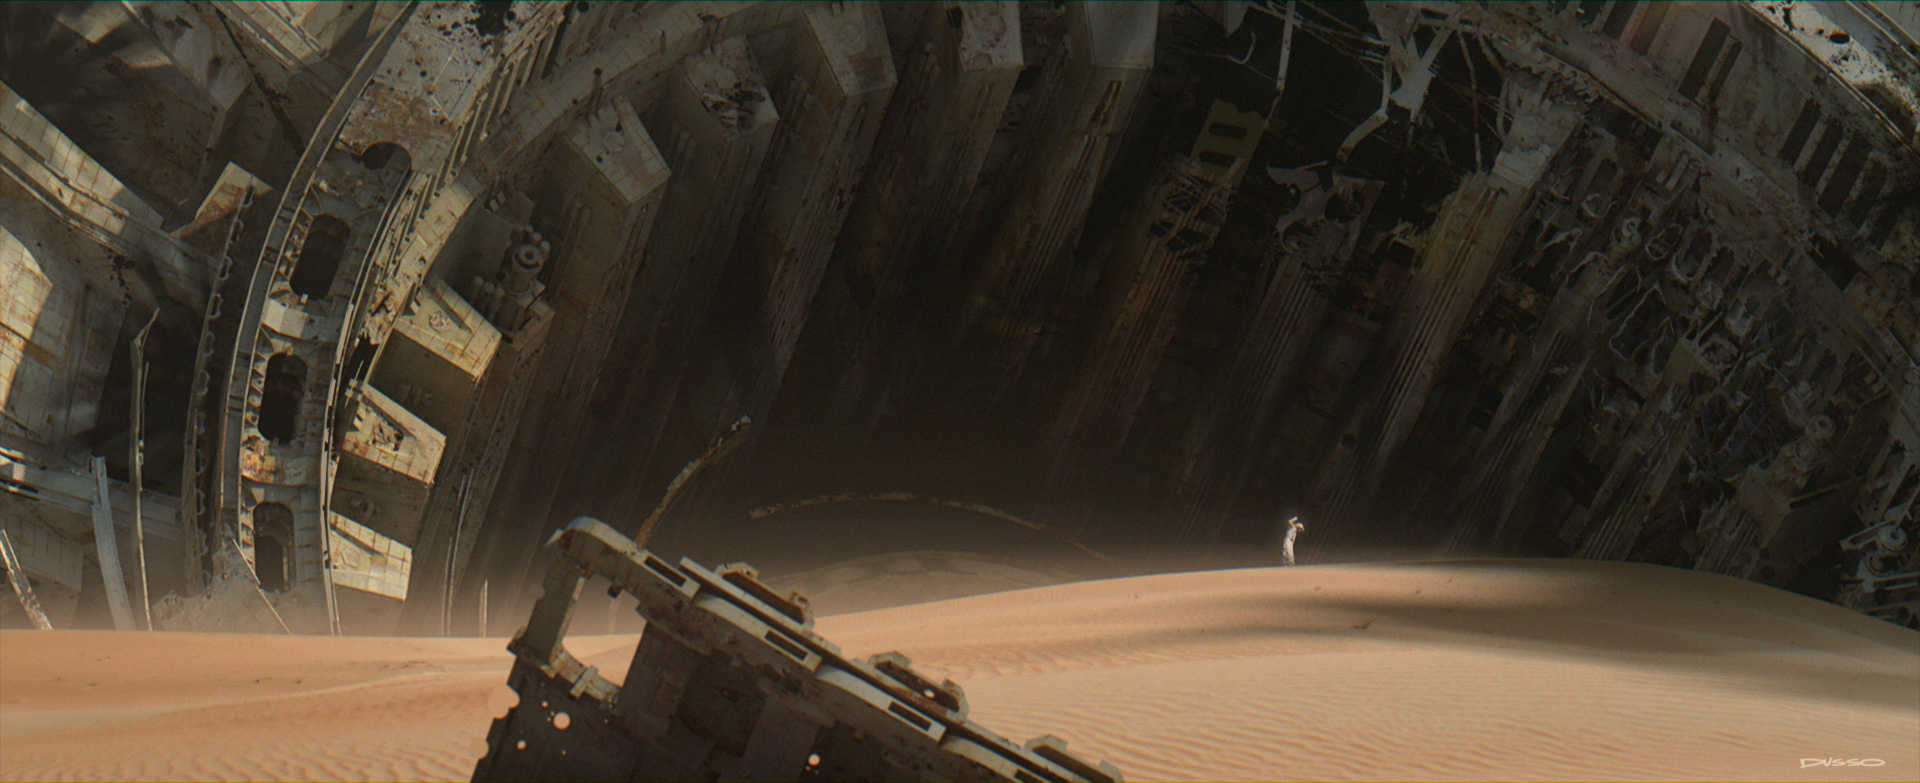 Star Wars: The Force Awakens Concept Art by Industrial Light & Magic